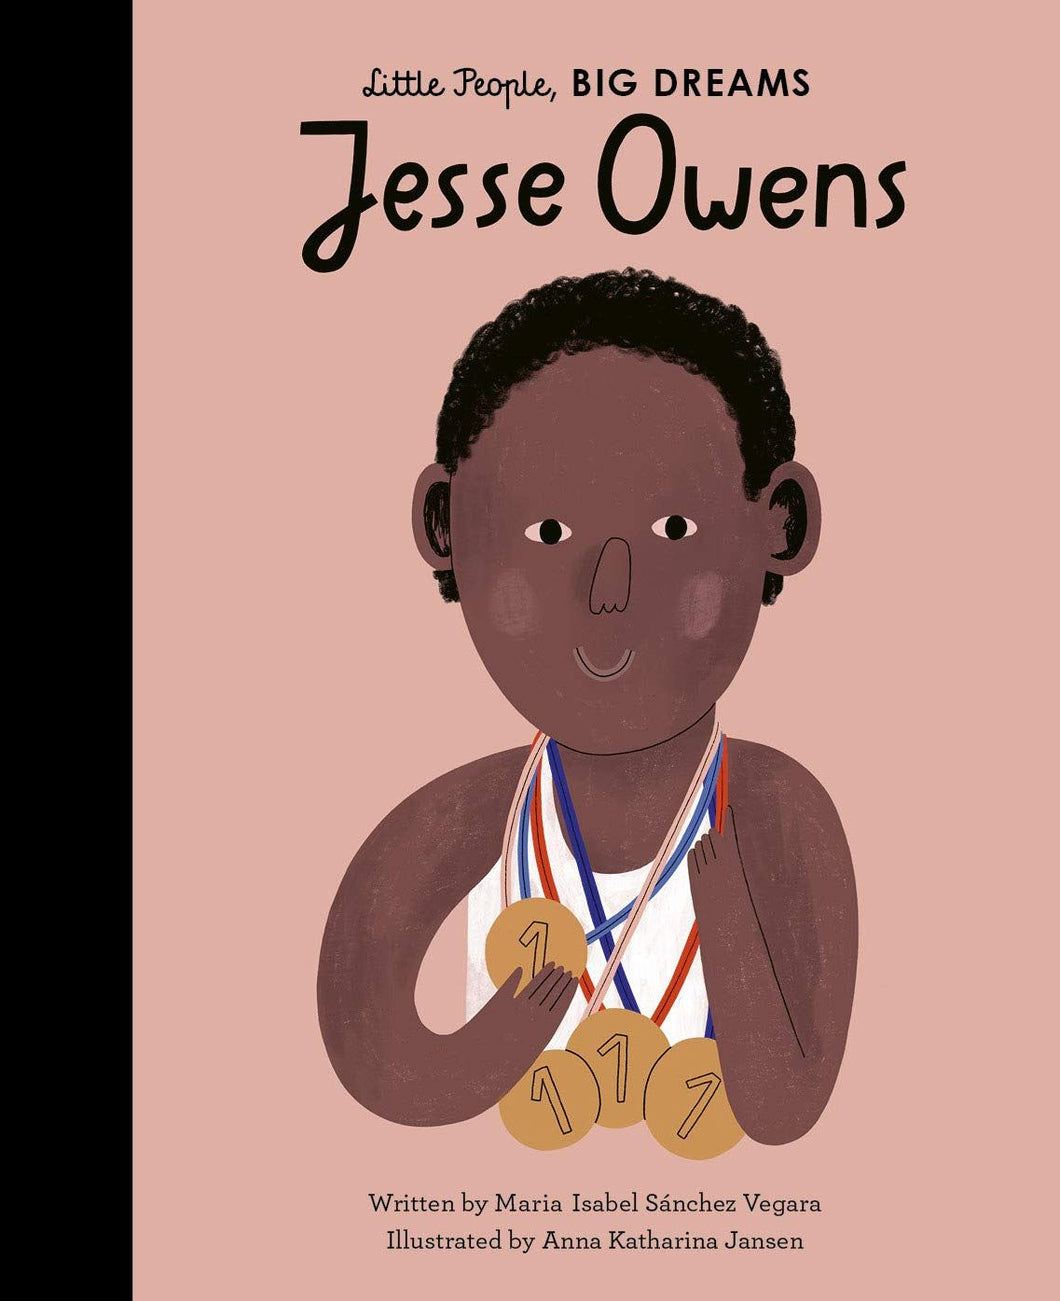 little-people-big-dreams-jesse-ownens